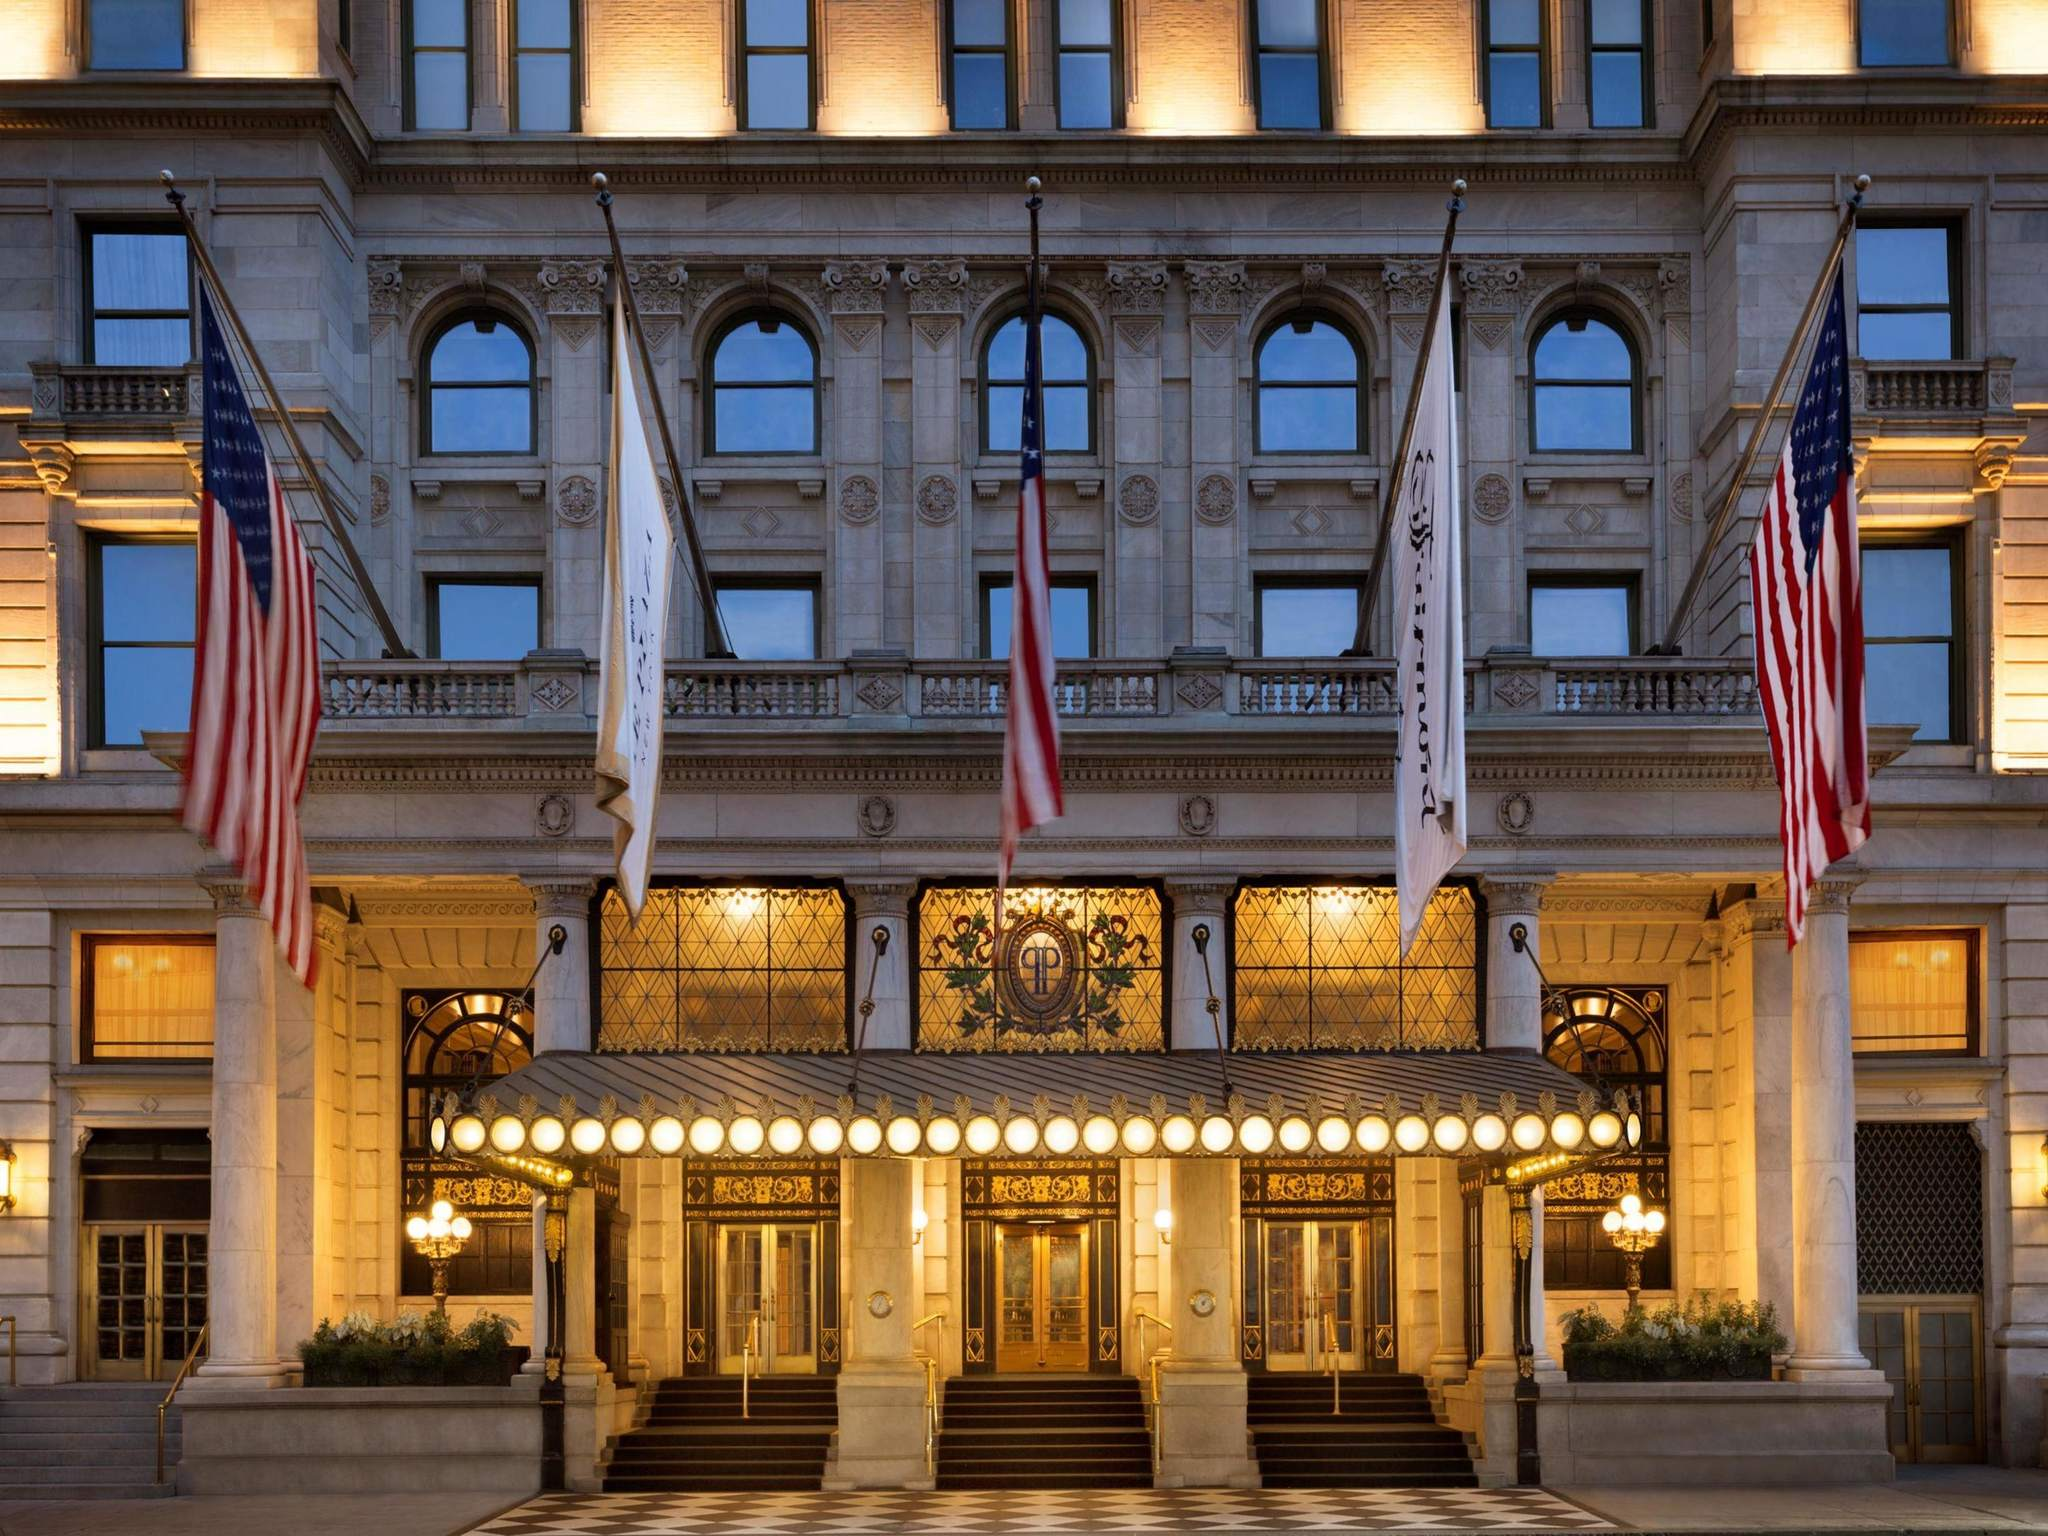 Hotel - The Plaza - A Fairmont Managed Hotel